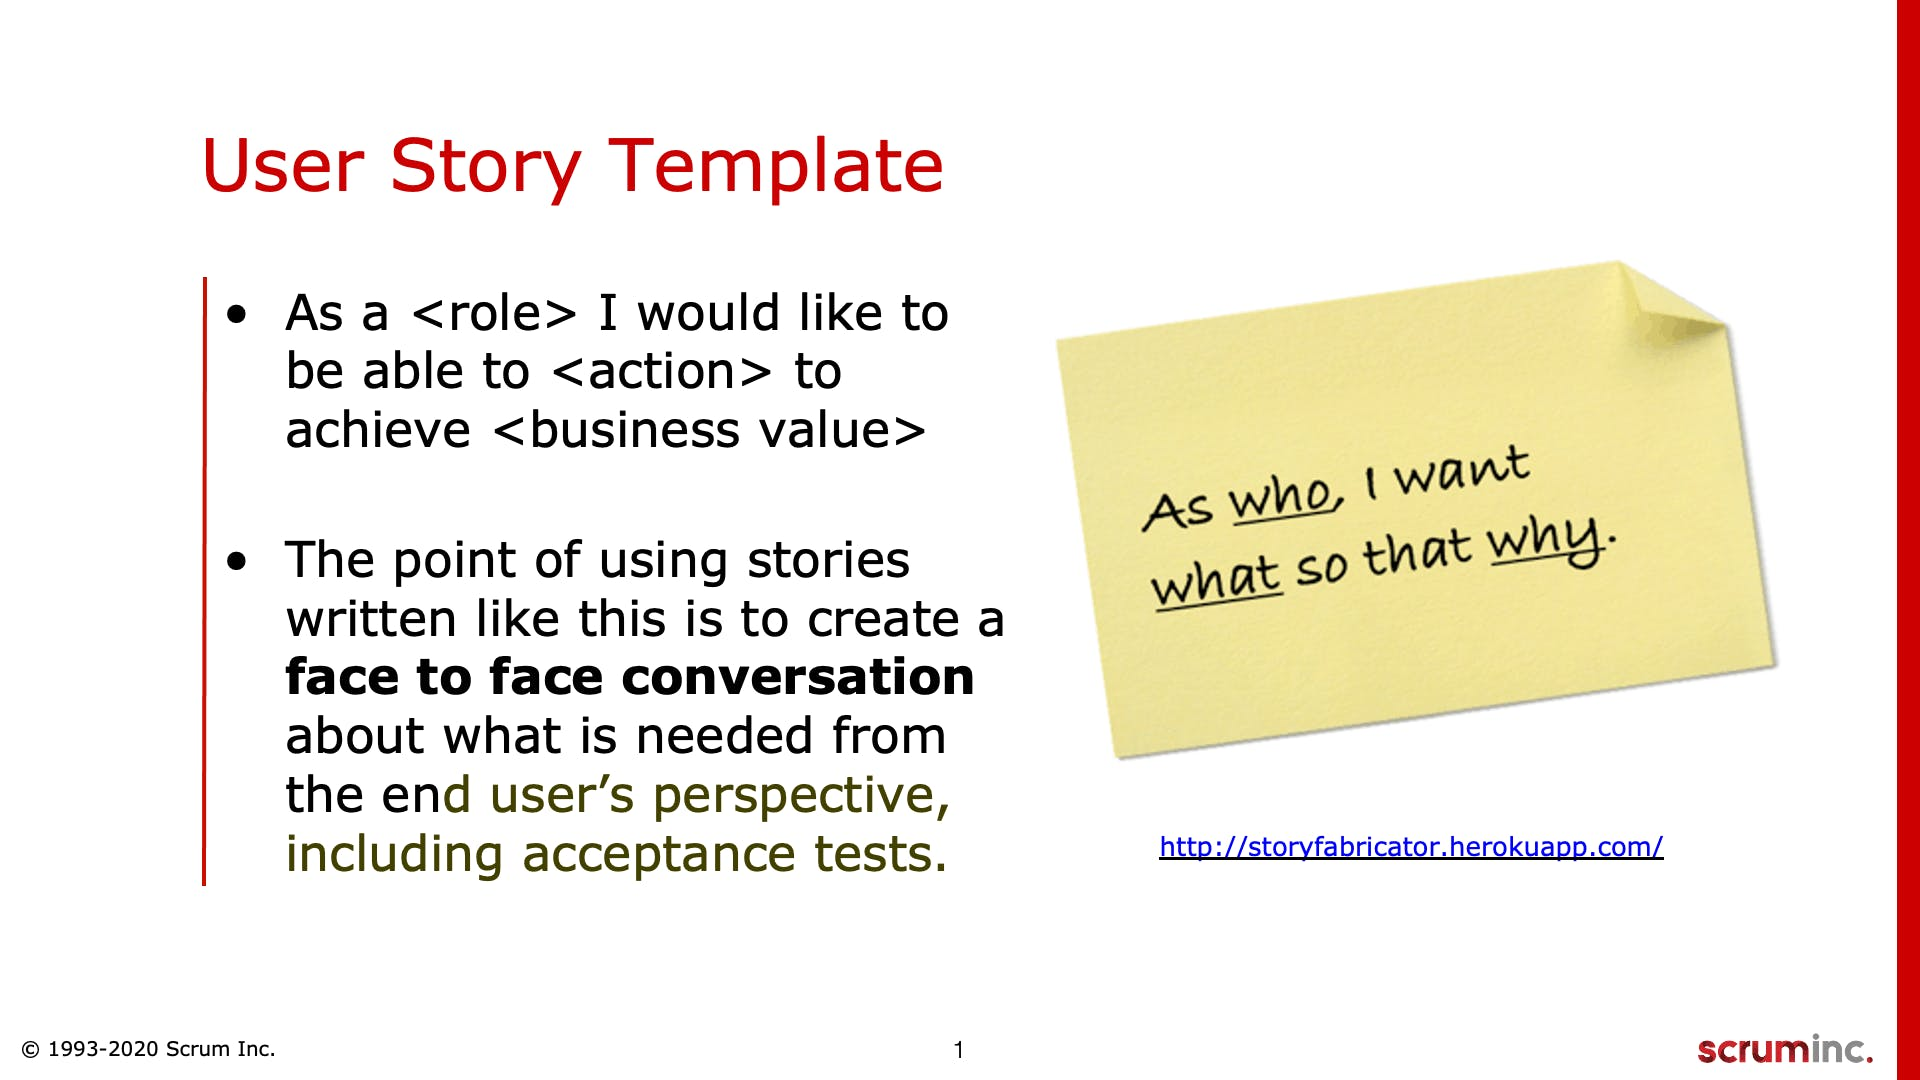 User Stories And The Alternatives - Scrum Inc